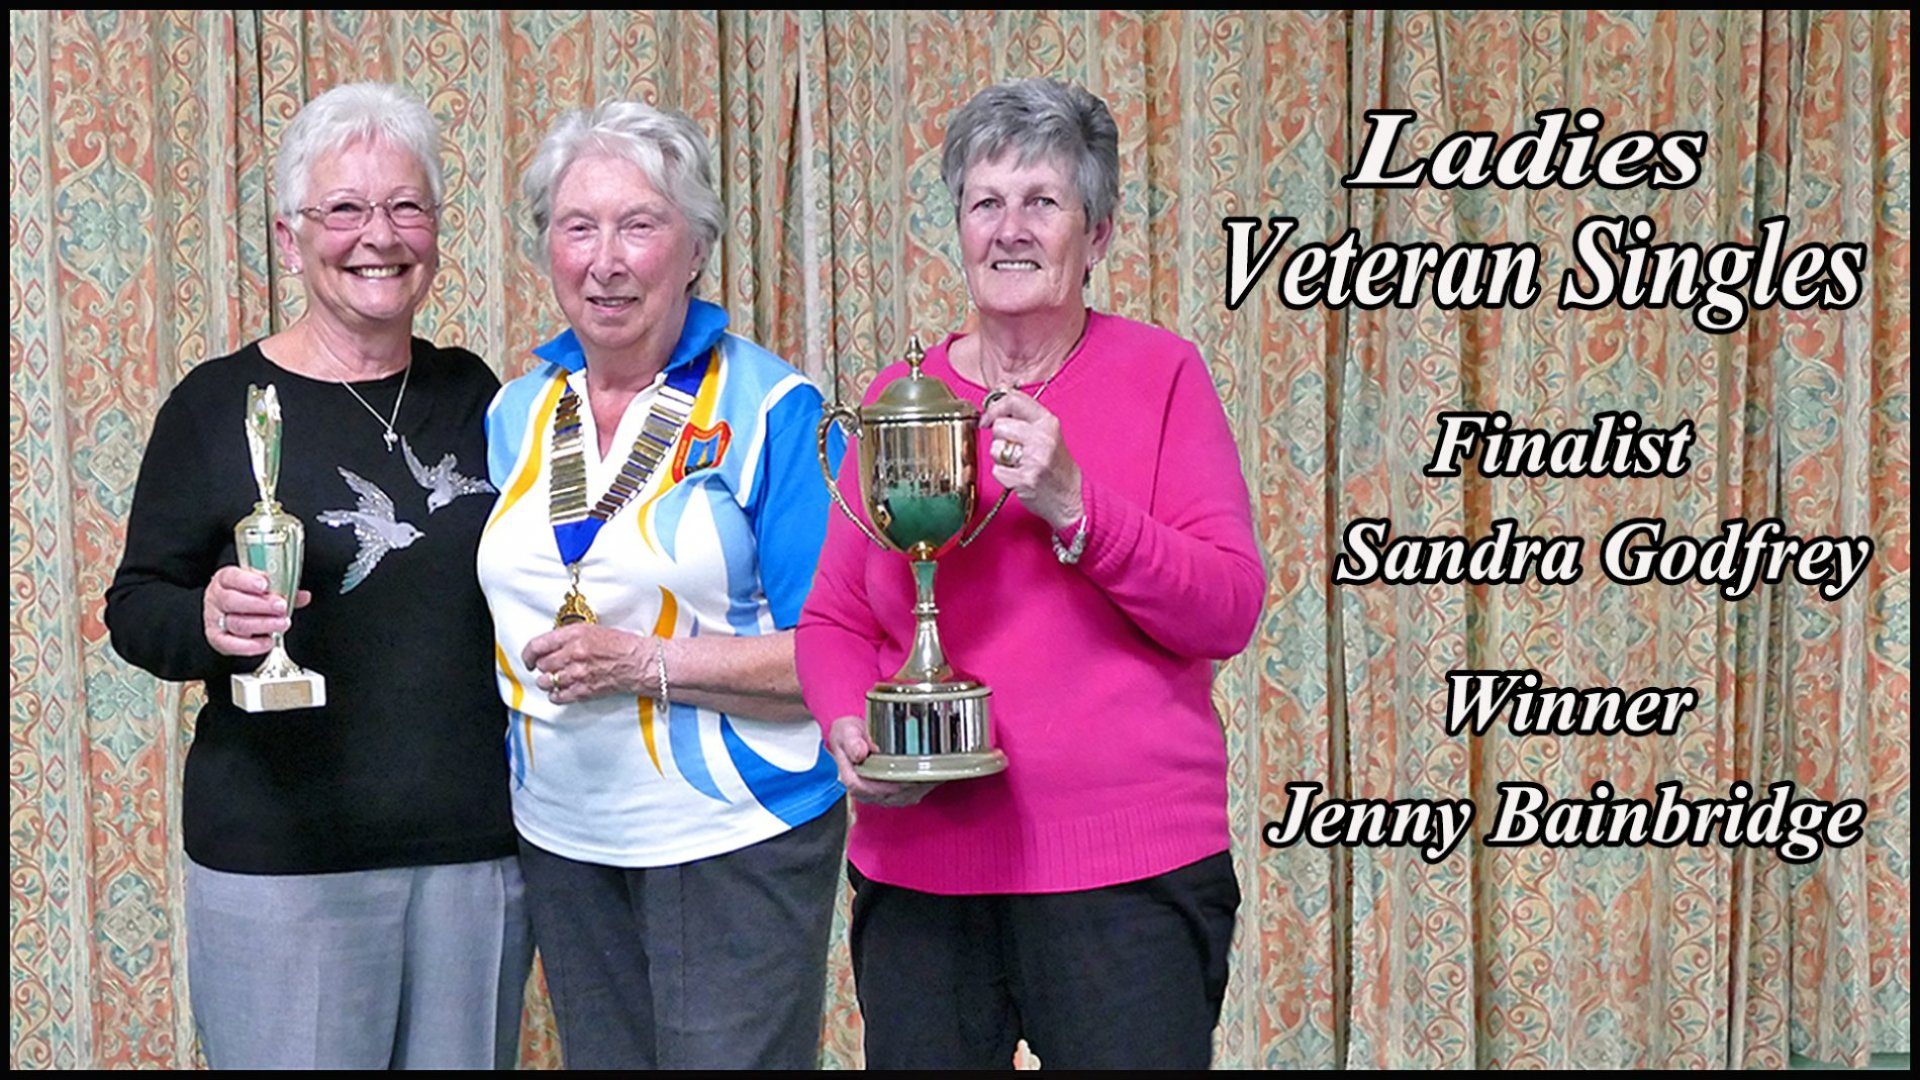 Ladies Veteran Singles Finalists